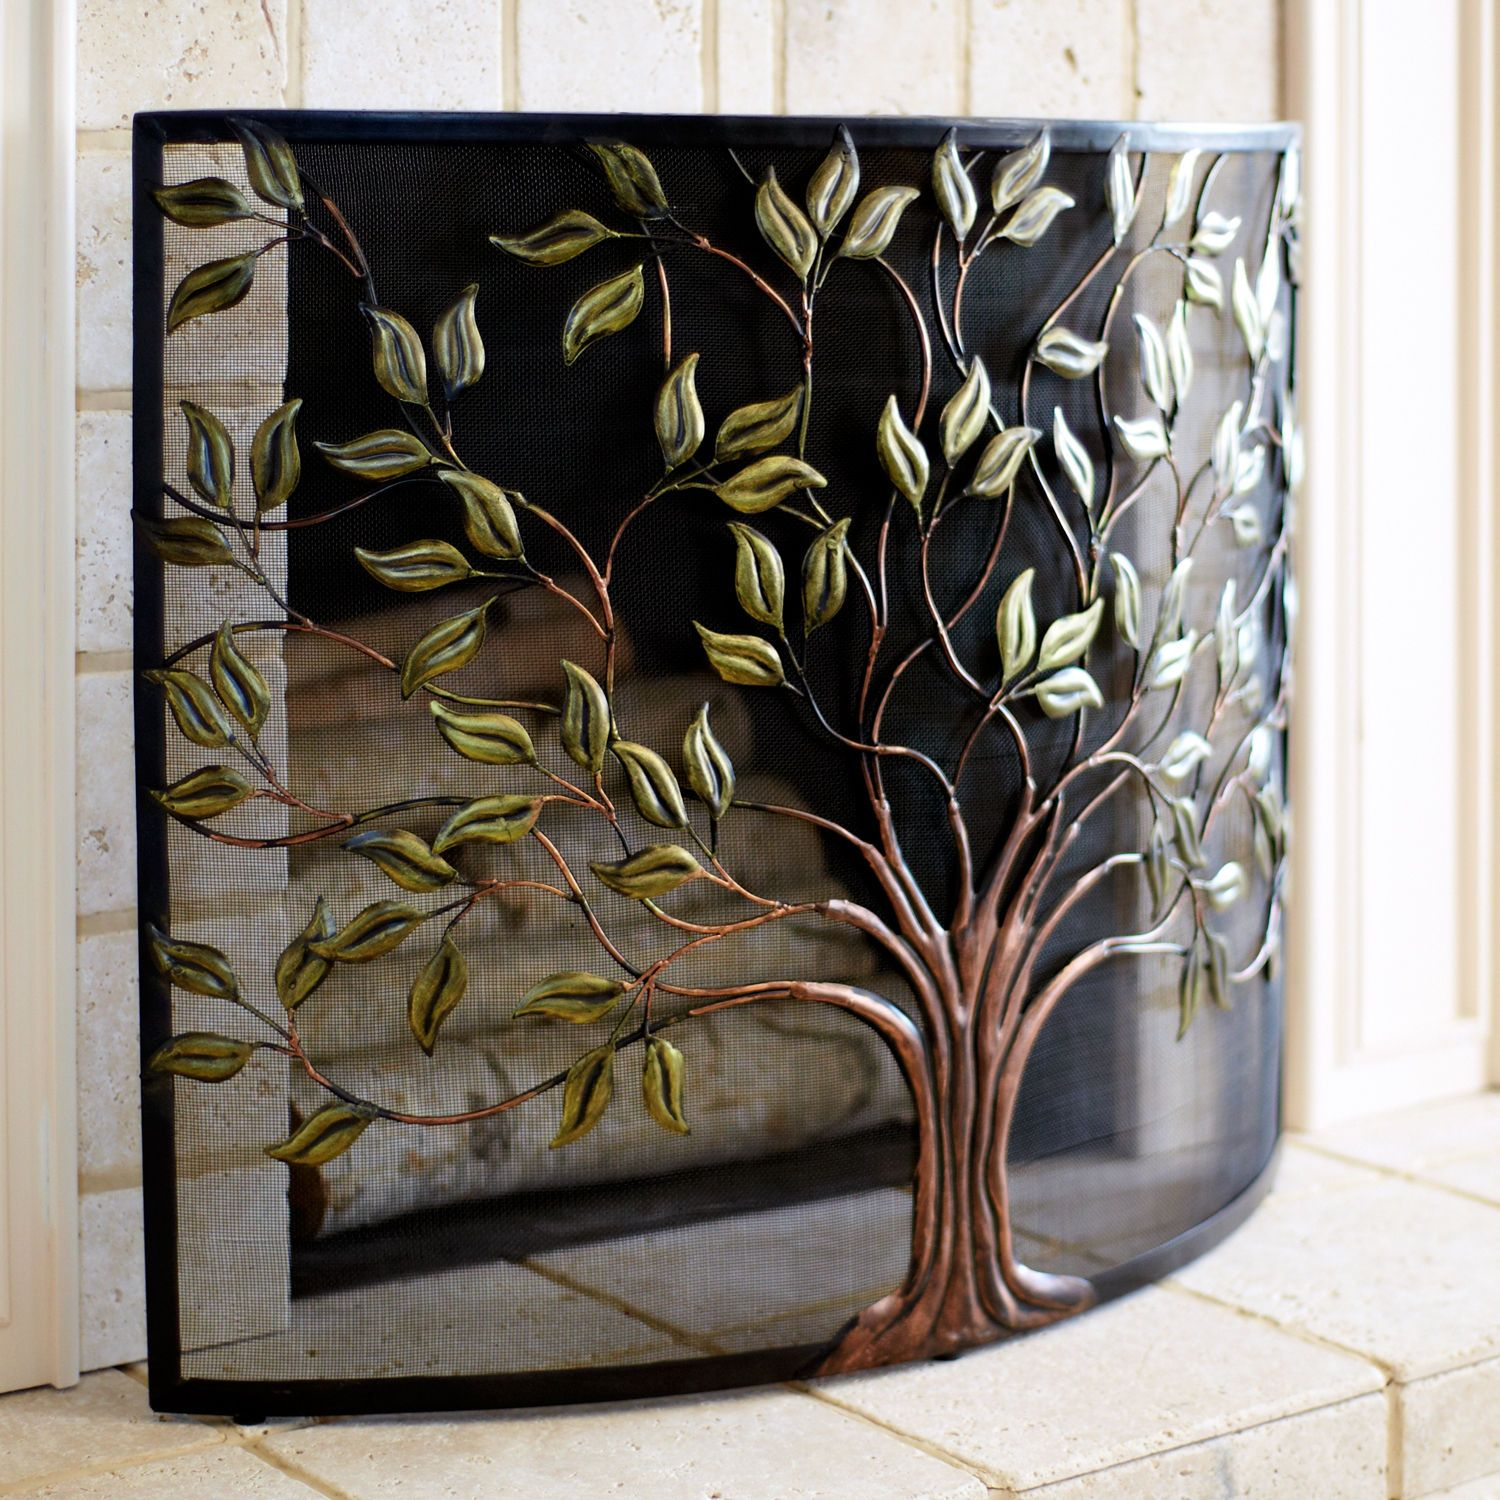 Tree Of Life Fireplace Surround: Cercis Tree Fireplace Screen